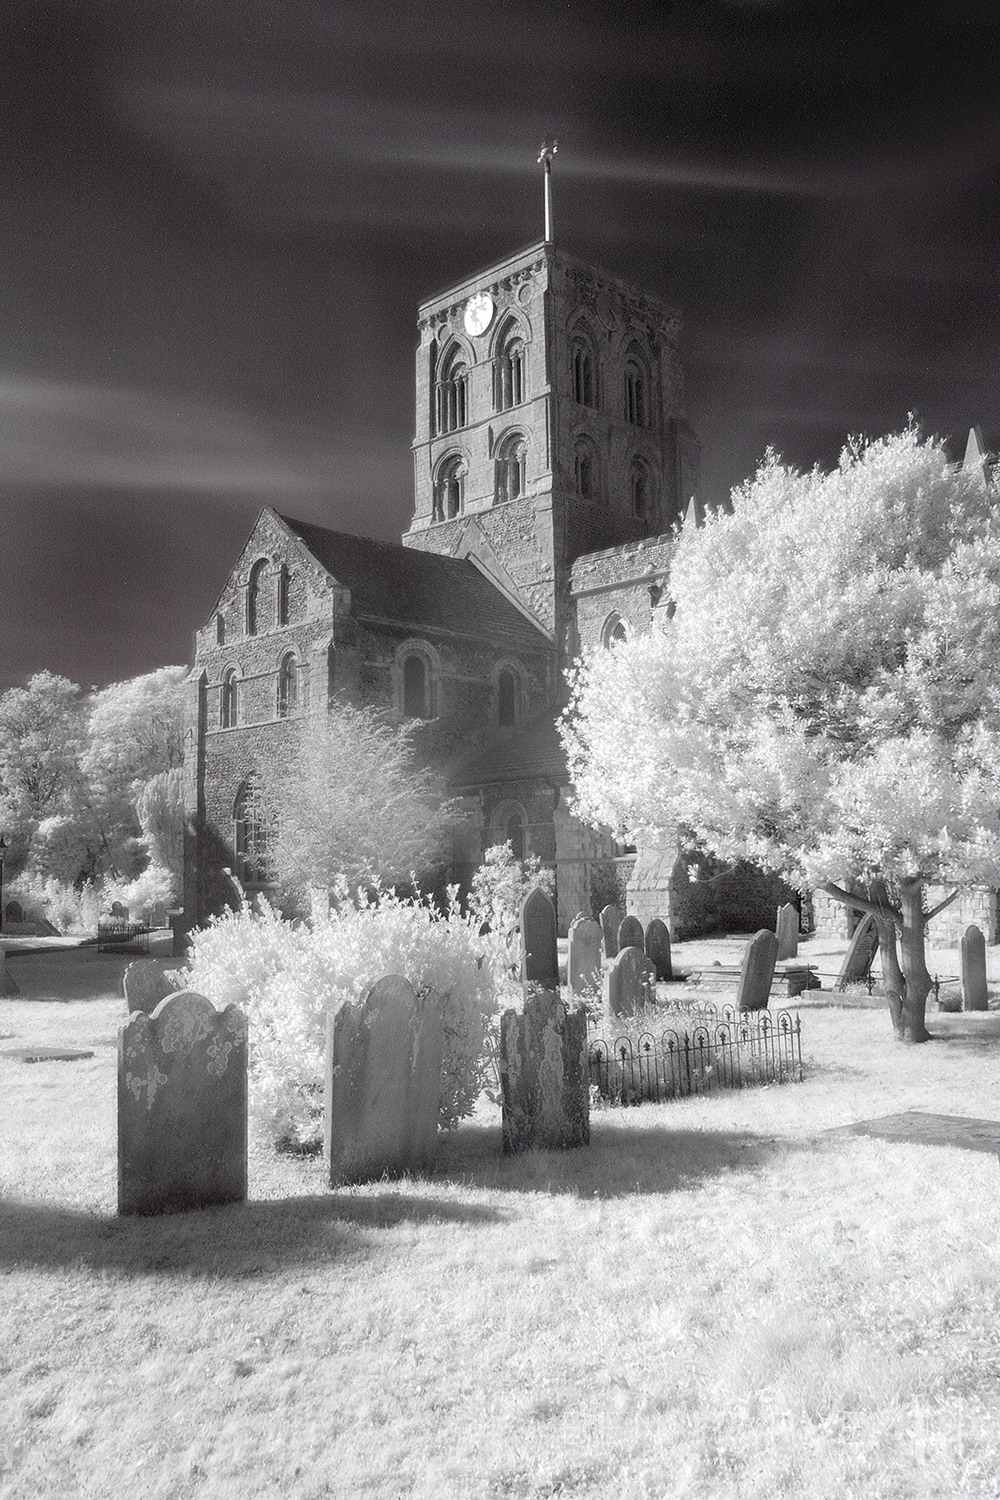 The same scene shot with an infra-red filter screwed on the front of the lens